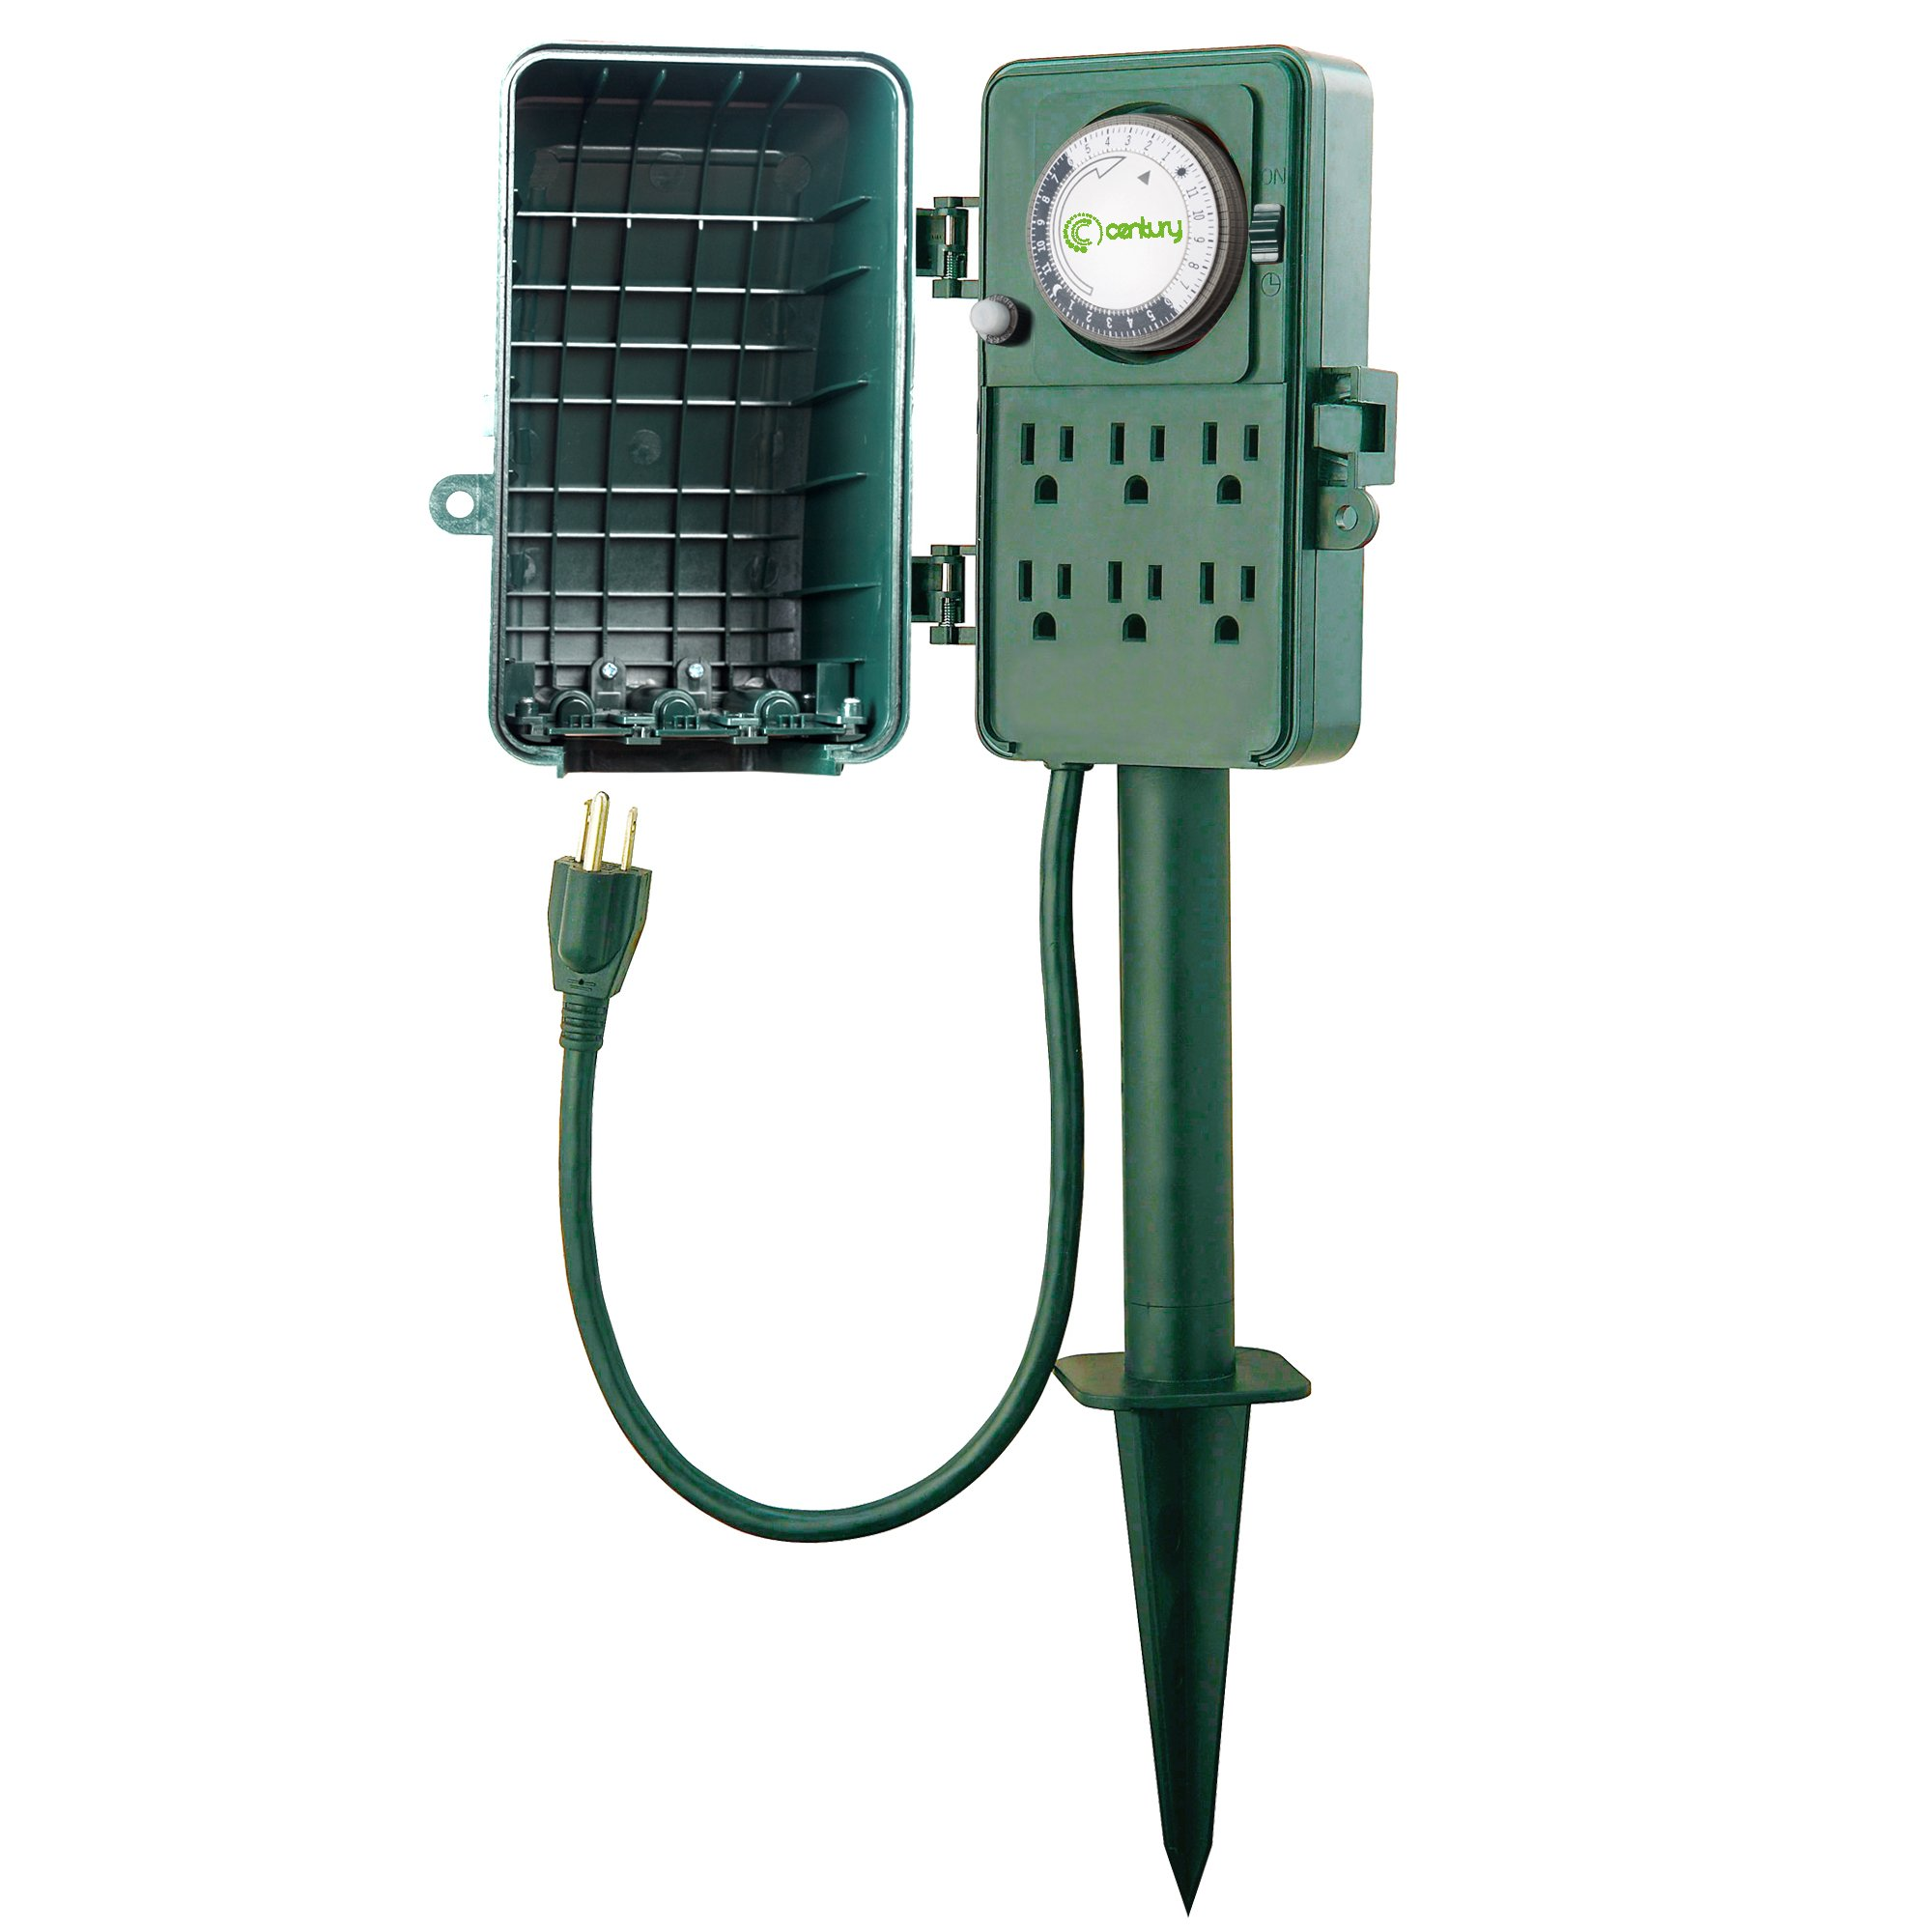 Century 24 Hour Mechanical Outdoor Multi Socket Timer, Waterproof Cover with 6 Outlet Garden Power Stake,6 ft Extension Cord,Outdoor Christmas Lights,Rain Tight 1875W/15A ETL Listed by Century